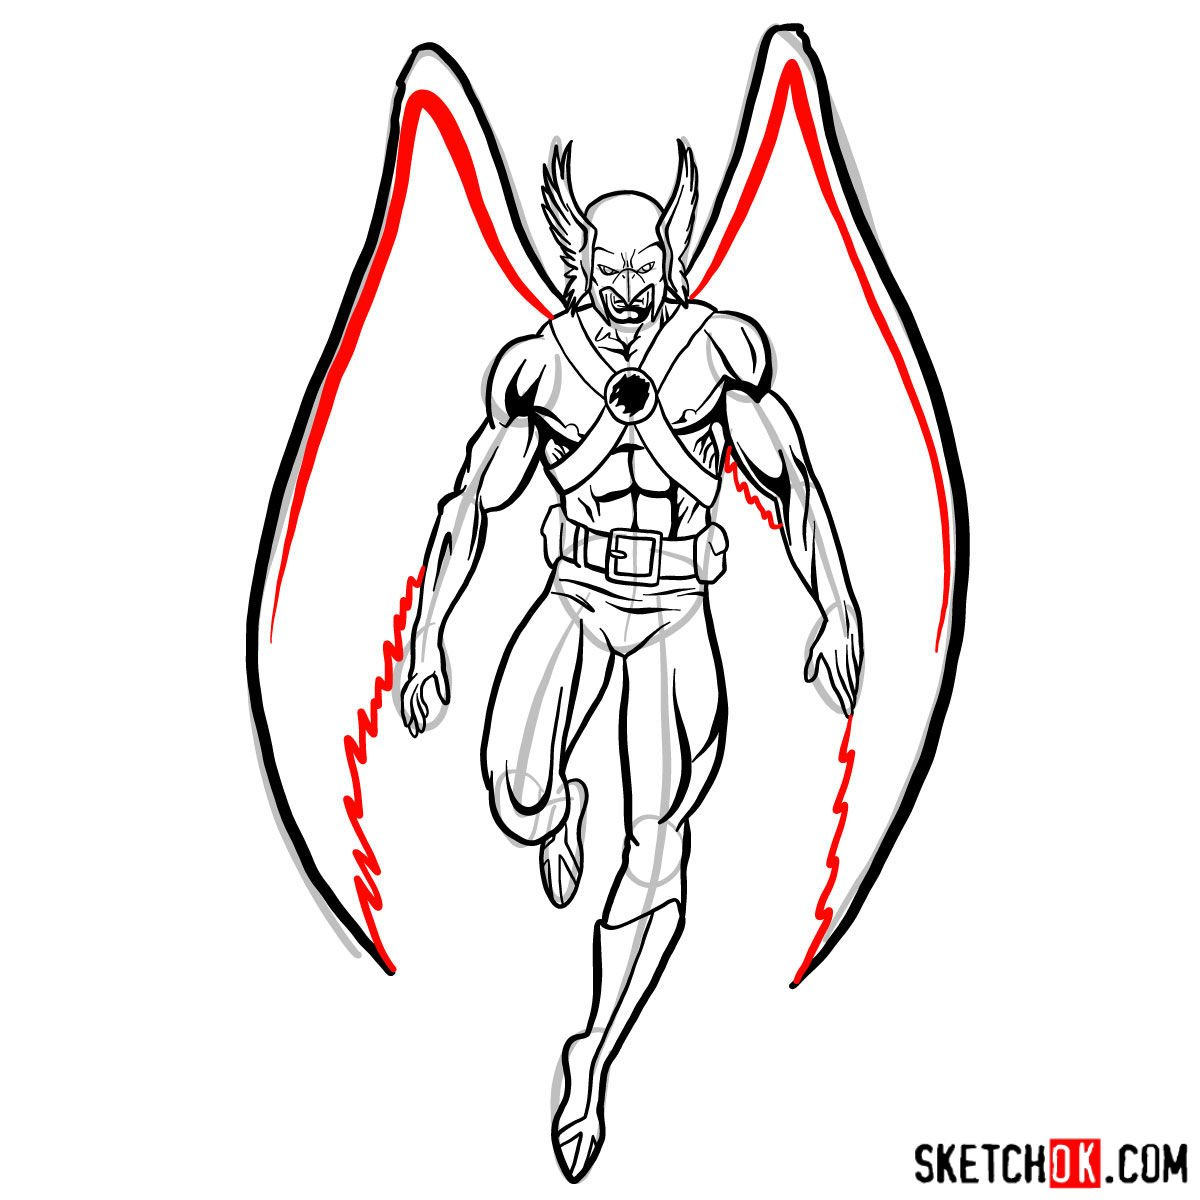 How to draw Hawkman from DC Comics - step 14